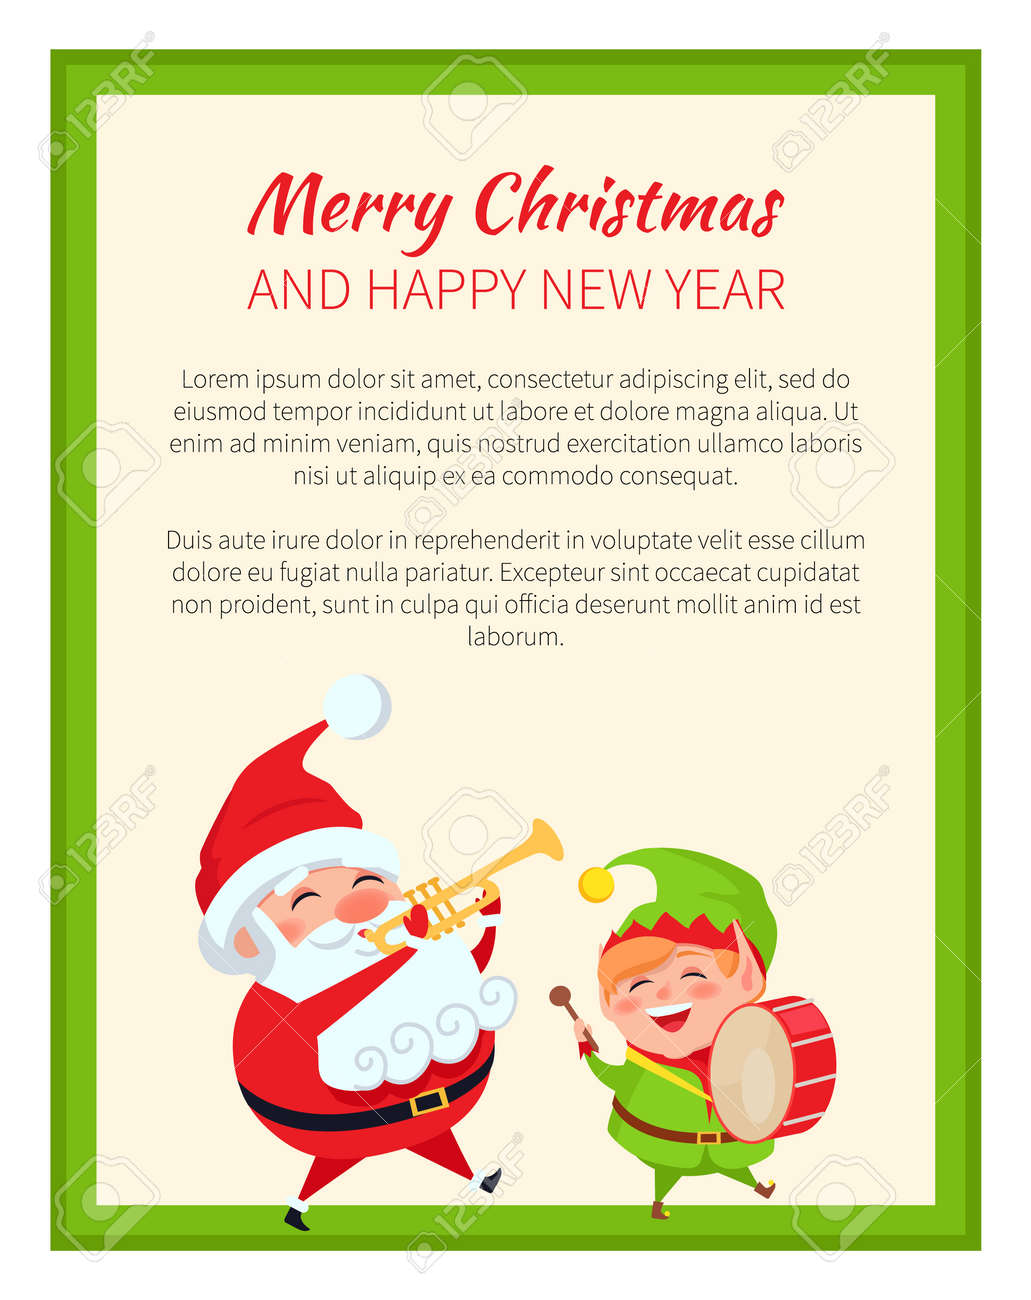 Merry Christmas Happy New Year Santa Claus And Card Royalty Free ...